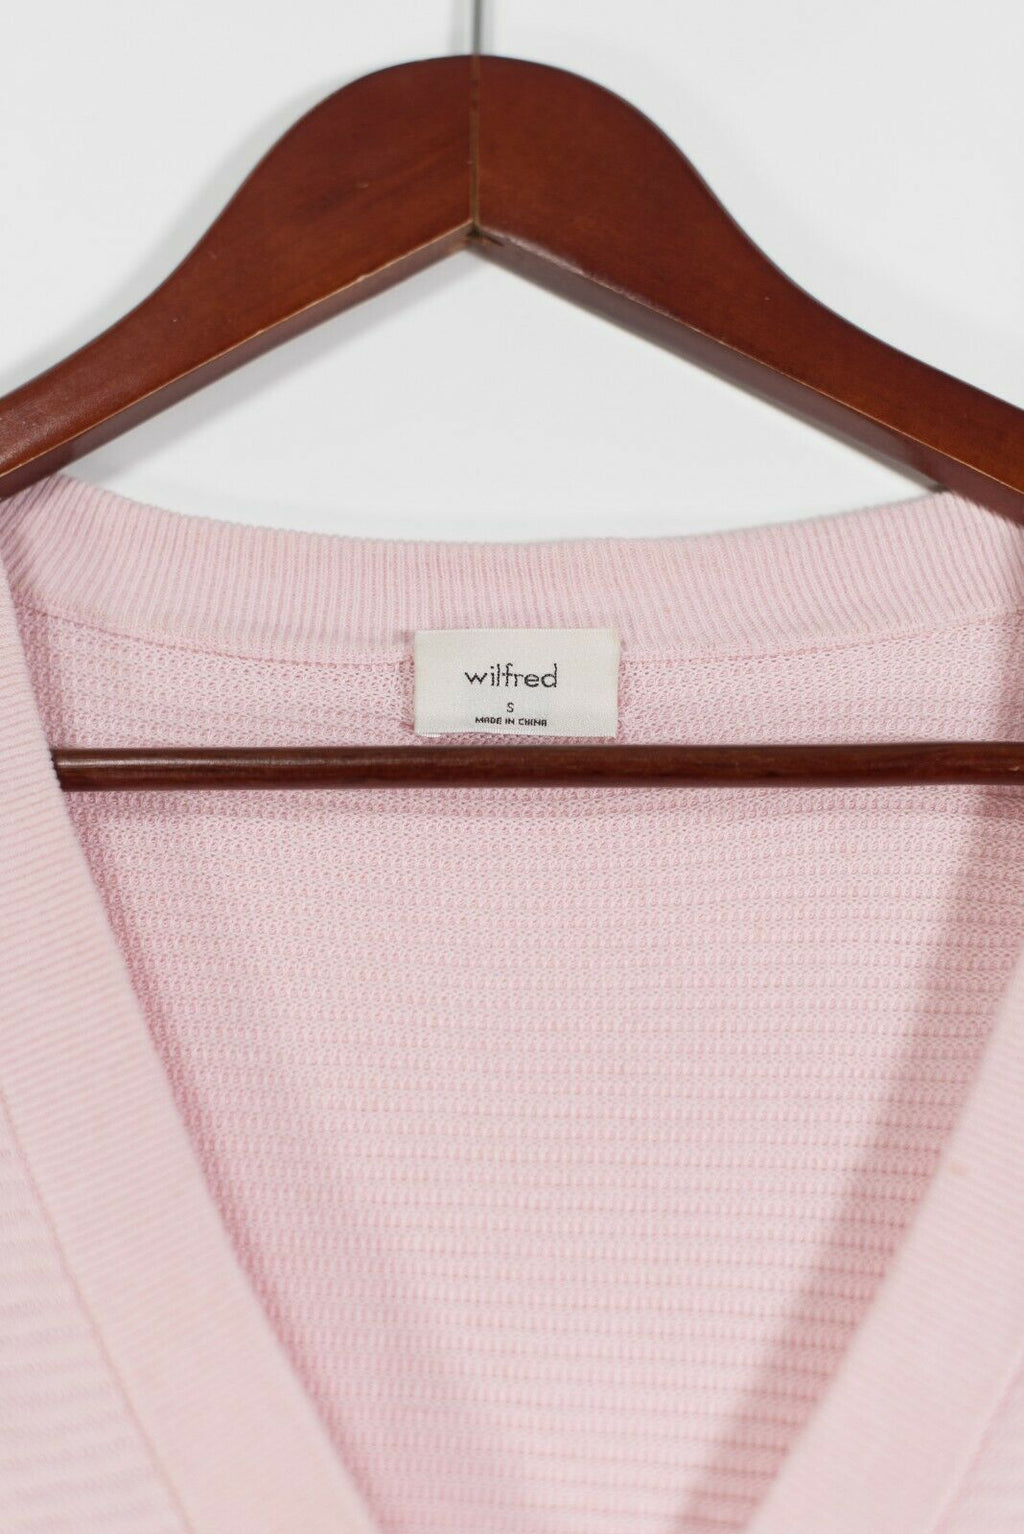 Aritzia Wilfred Women's Small Pink Light Cropped Cardigan Sweater V-Neck Knit